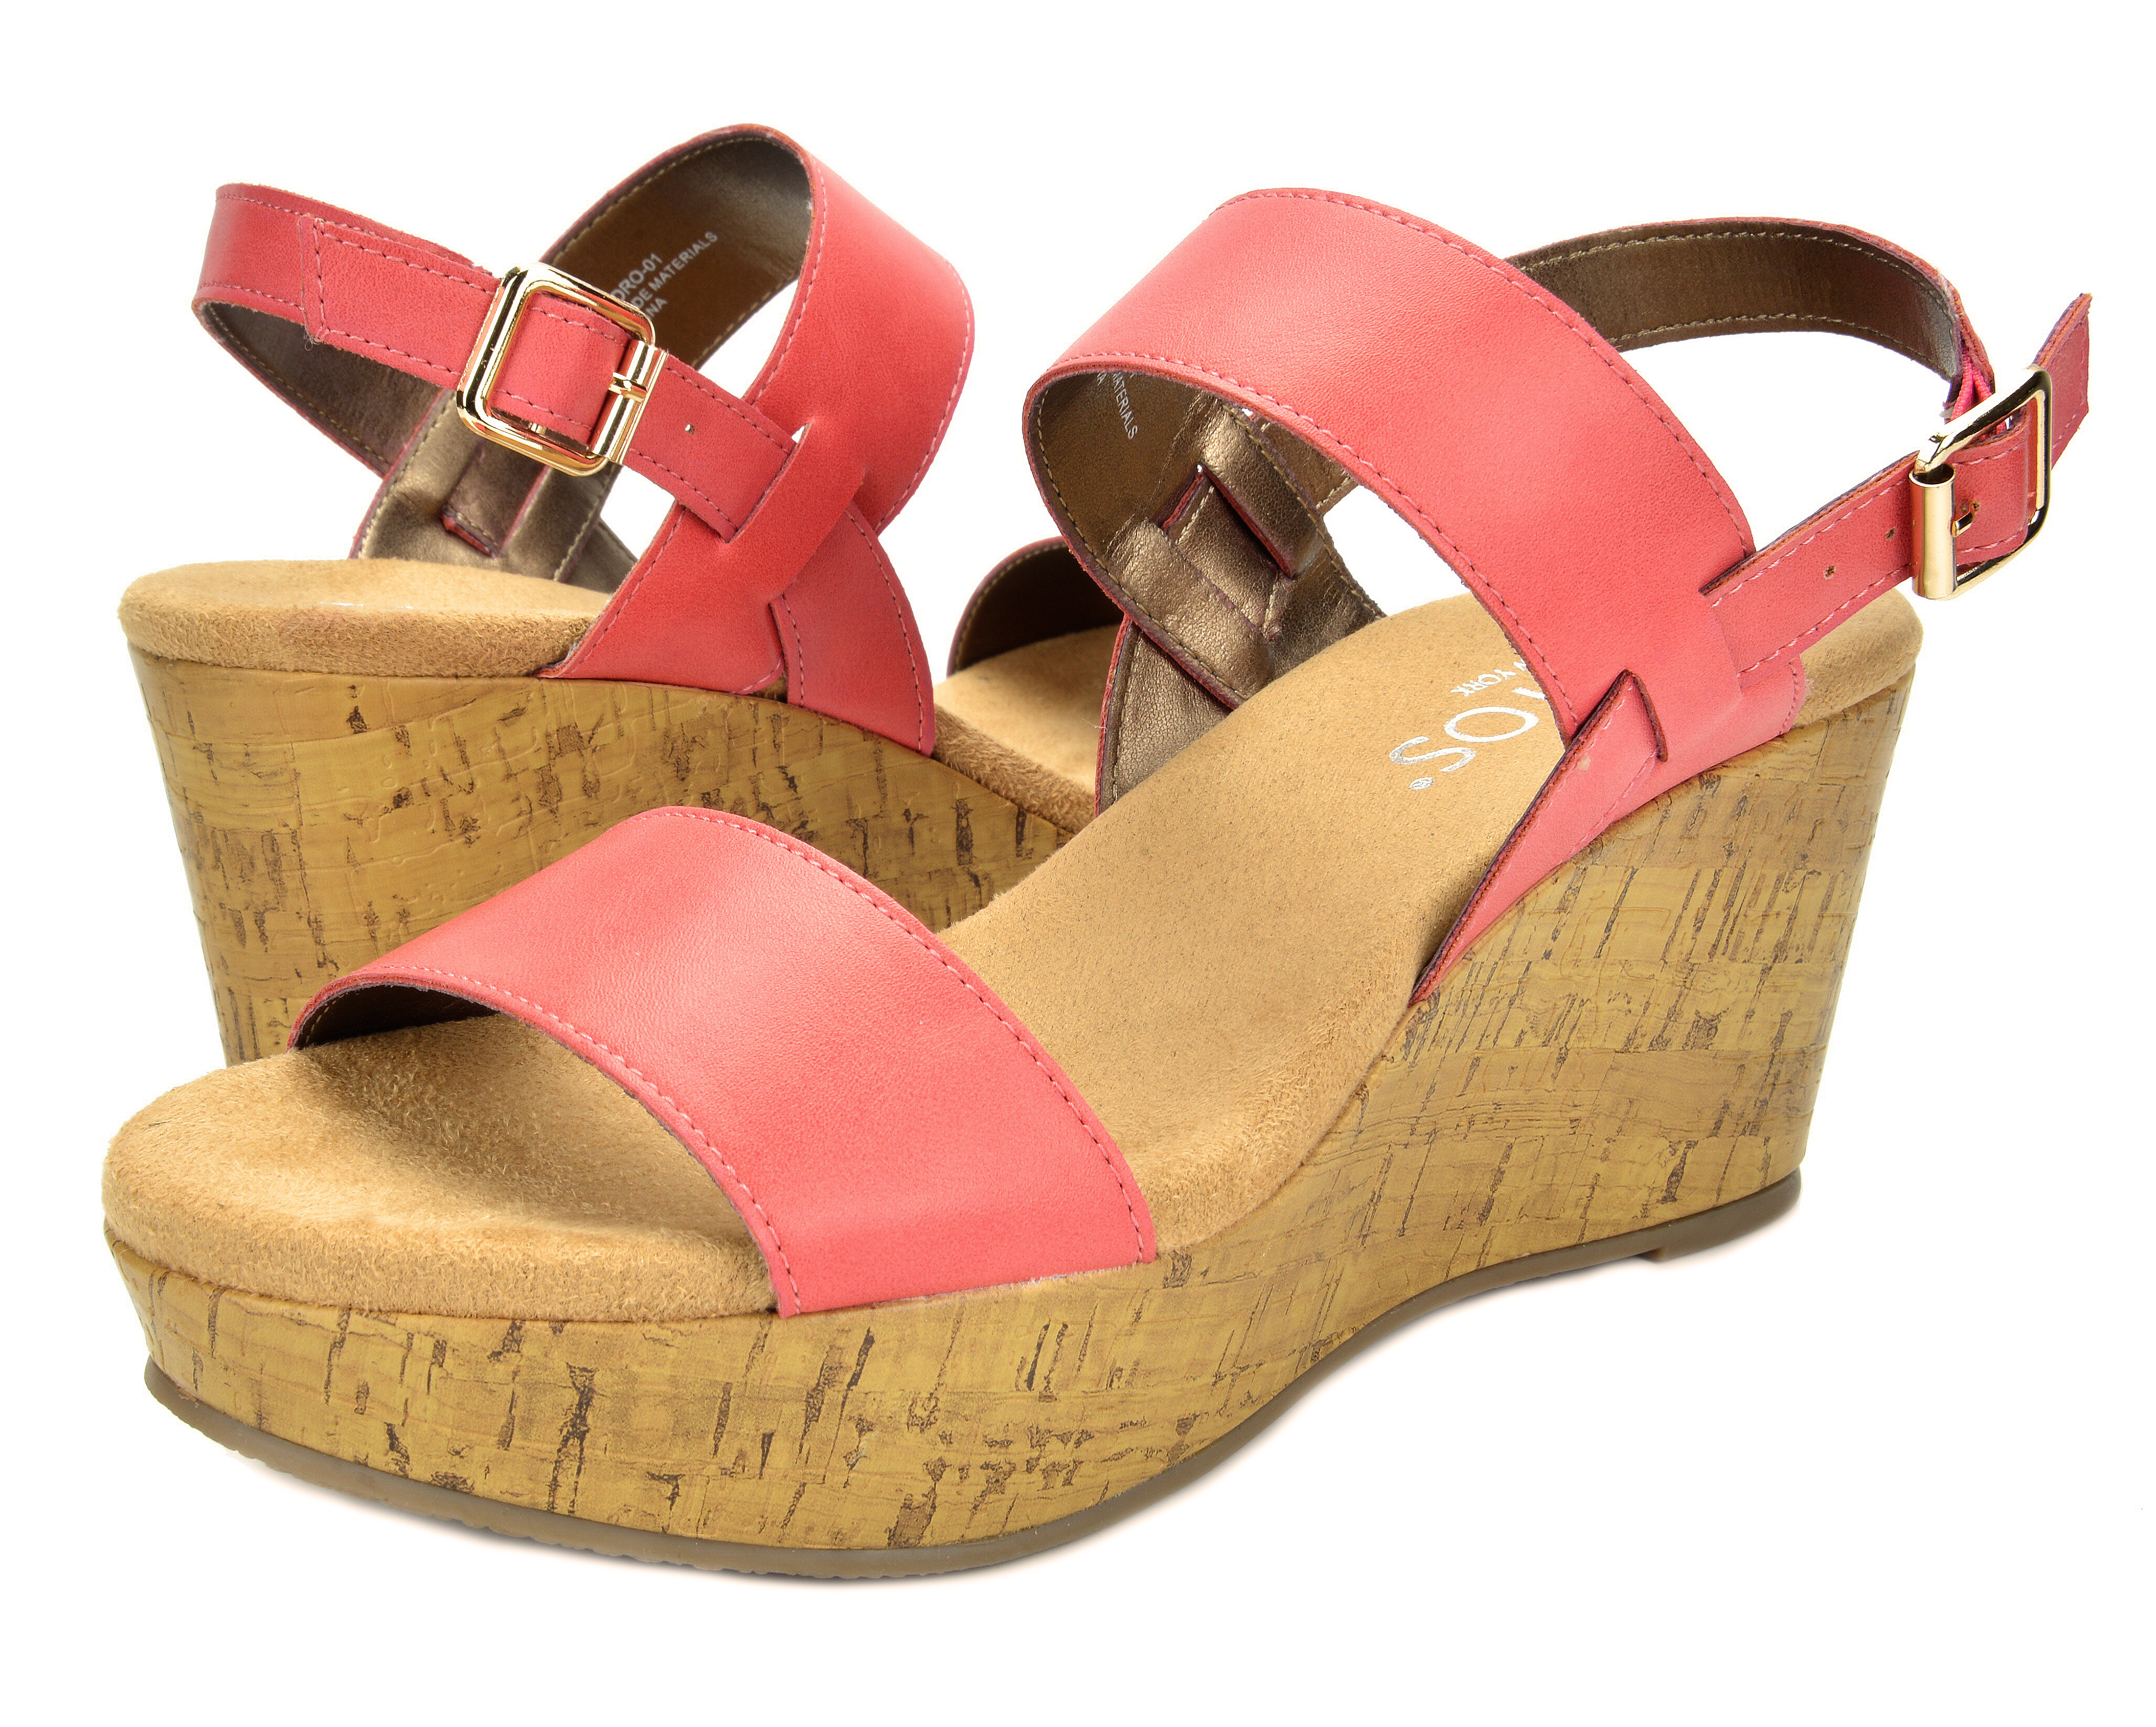 5fe8ecb5656a TOETOS Women SANDRO Summer Casual Ankle Strap Mid Heels Platform ...